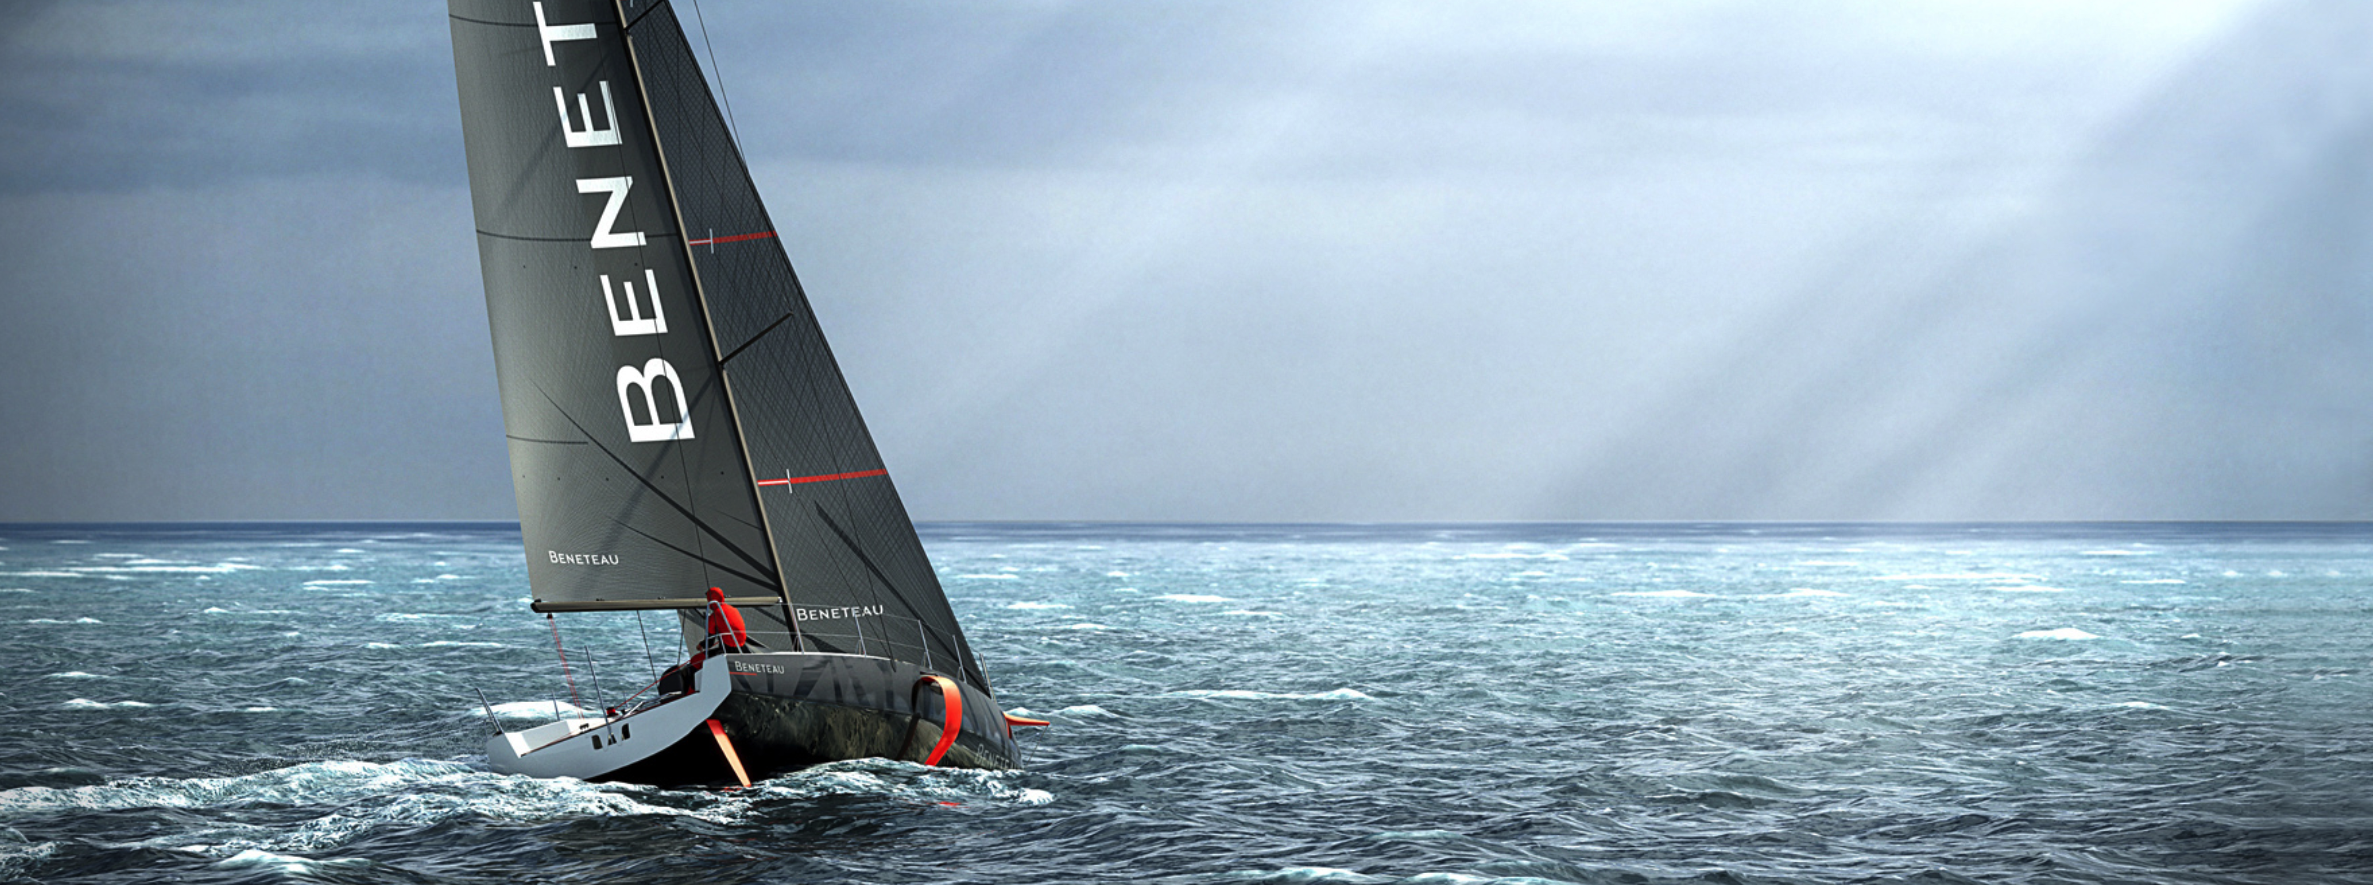 DREAM RACER BOATS Figaro-3-1 Actualité